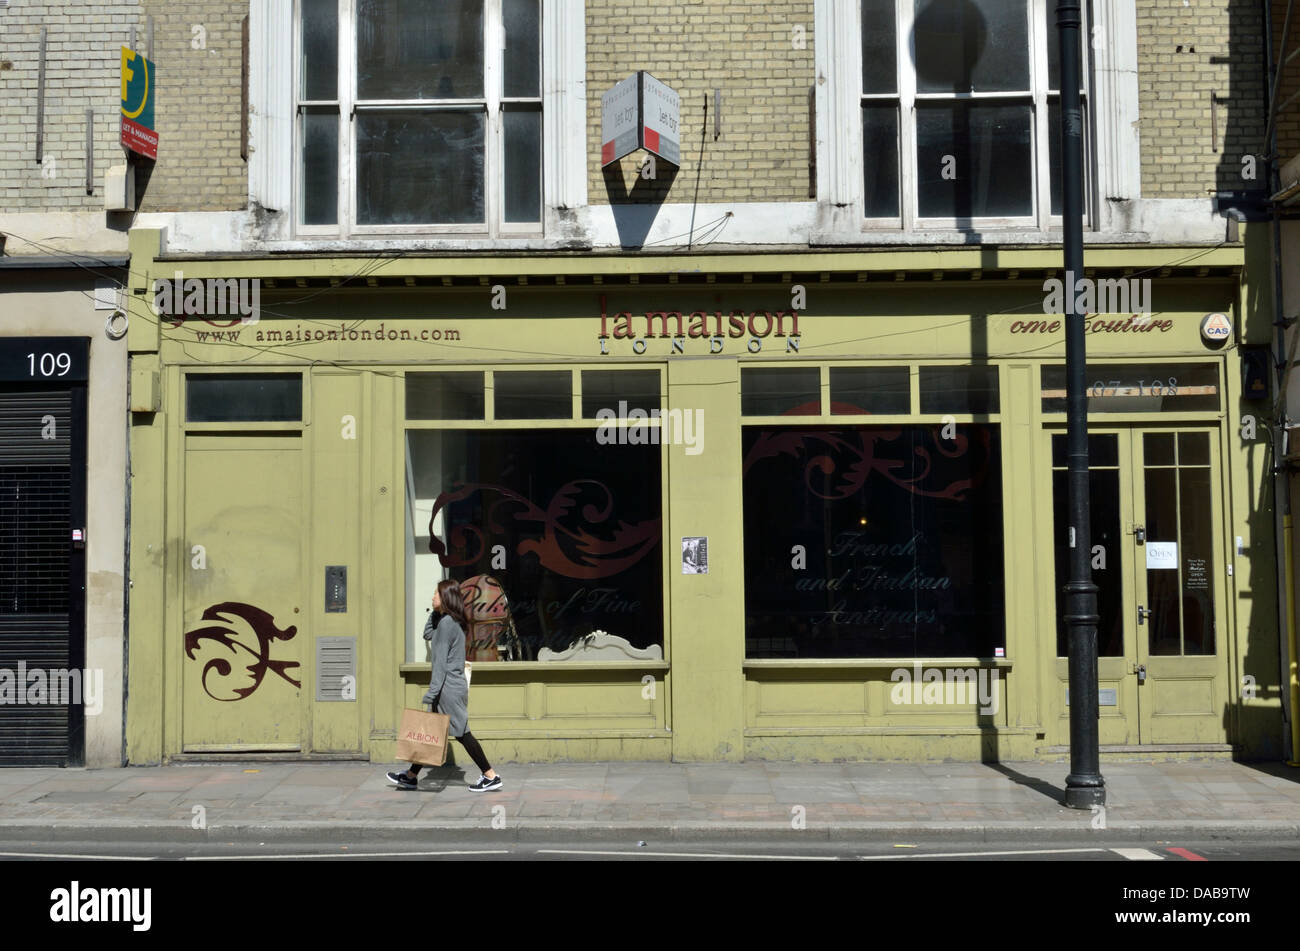 La Maison antique bed and antique furniture shop in Shoreditch High Street, Shoreditch, London, UK - Stock Image